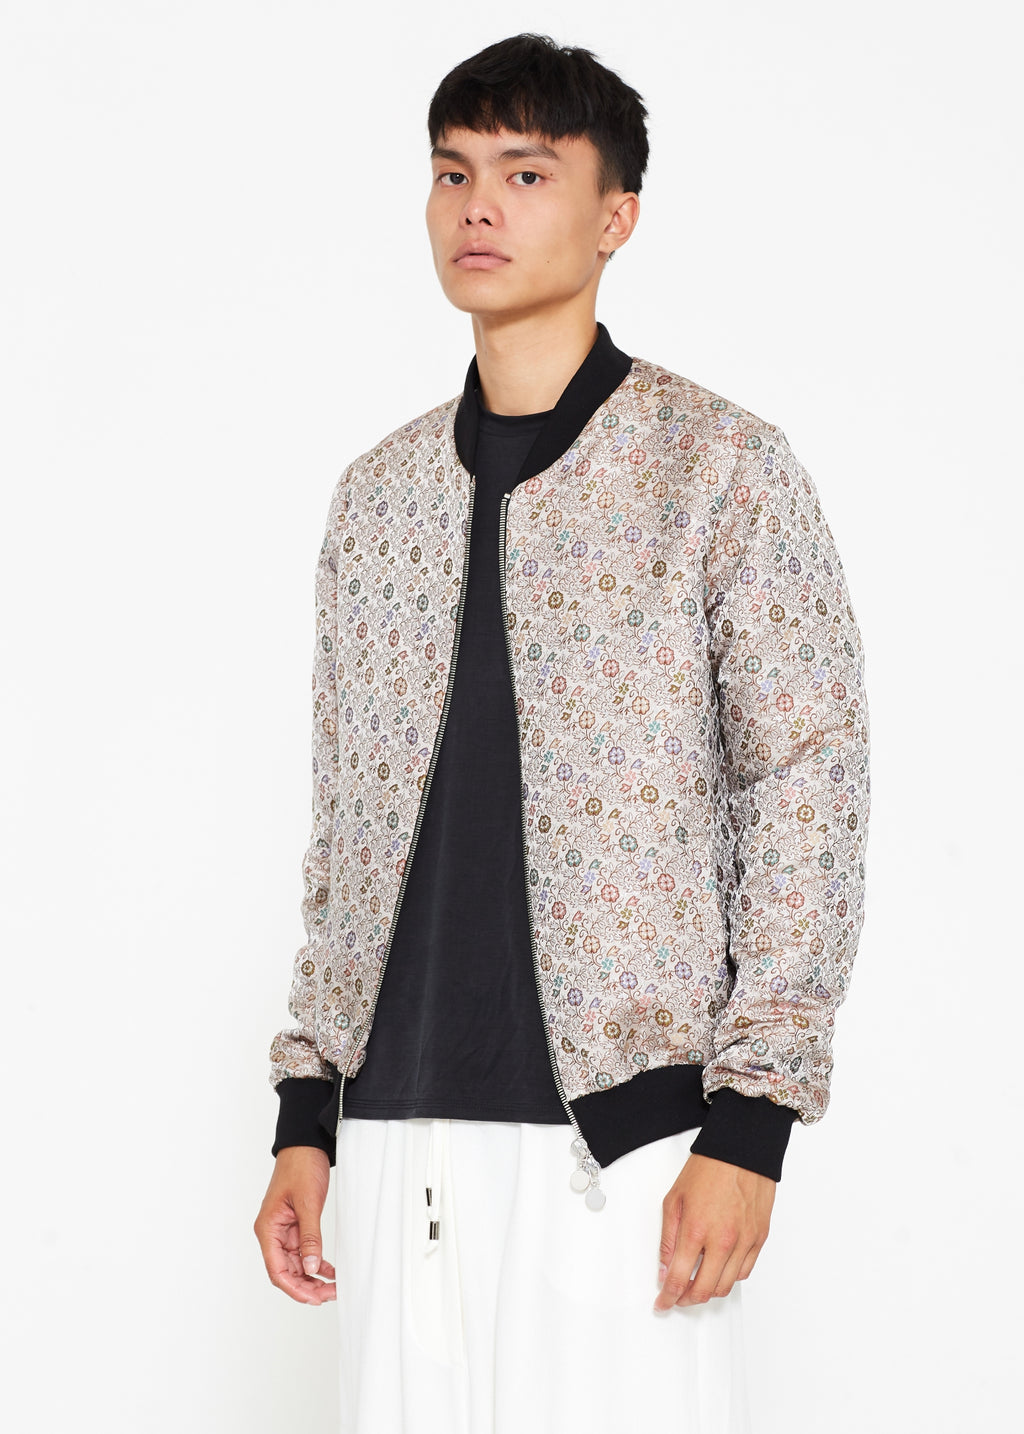 """The Limited Edition Crepe Bomber"" in Silver Floral"